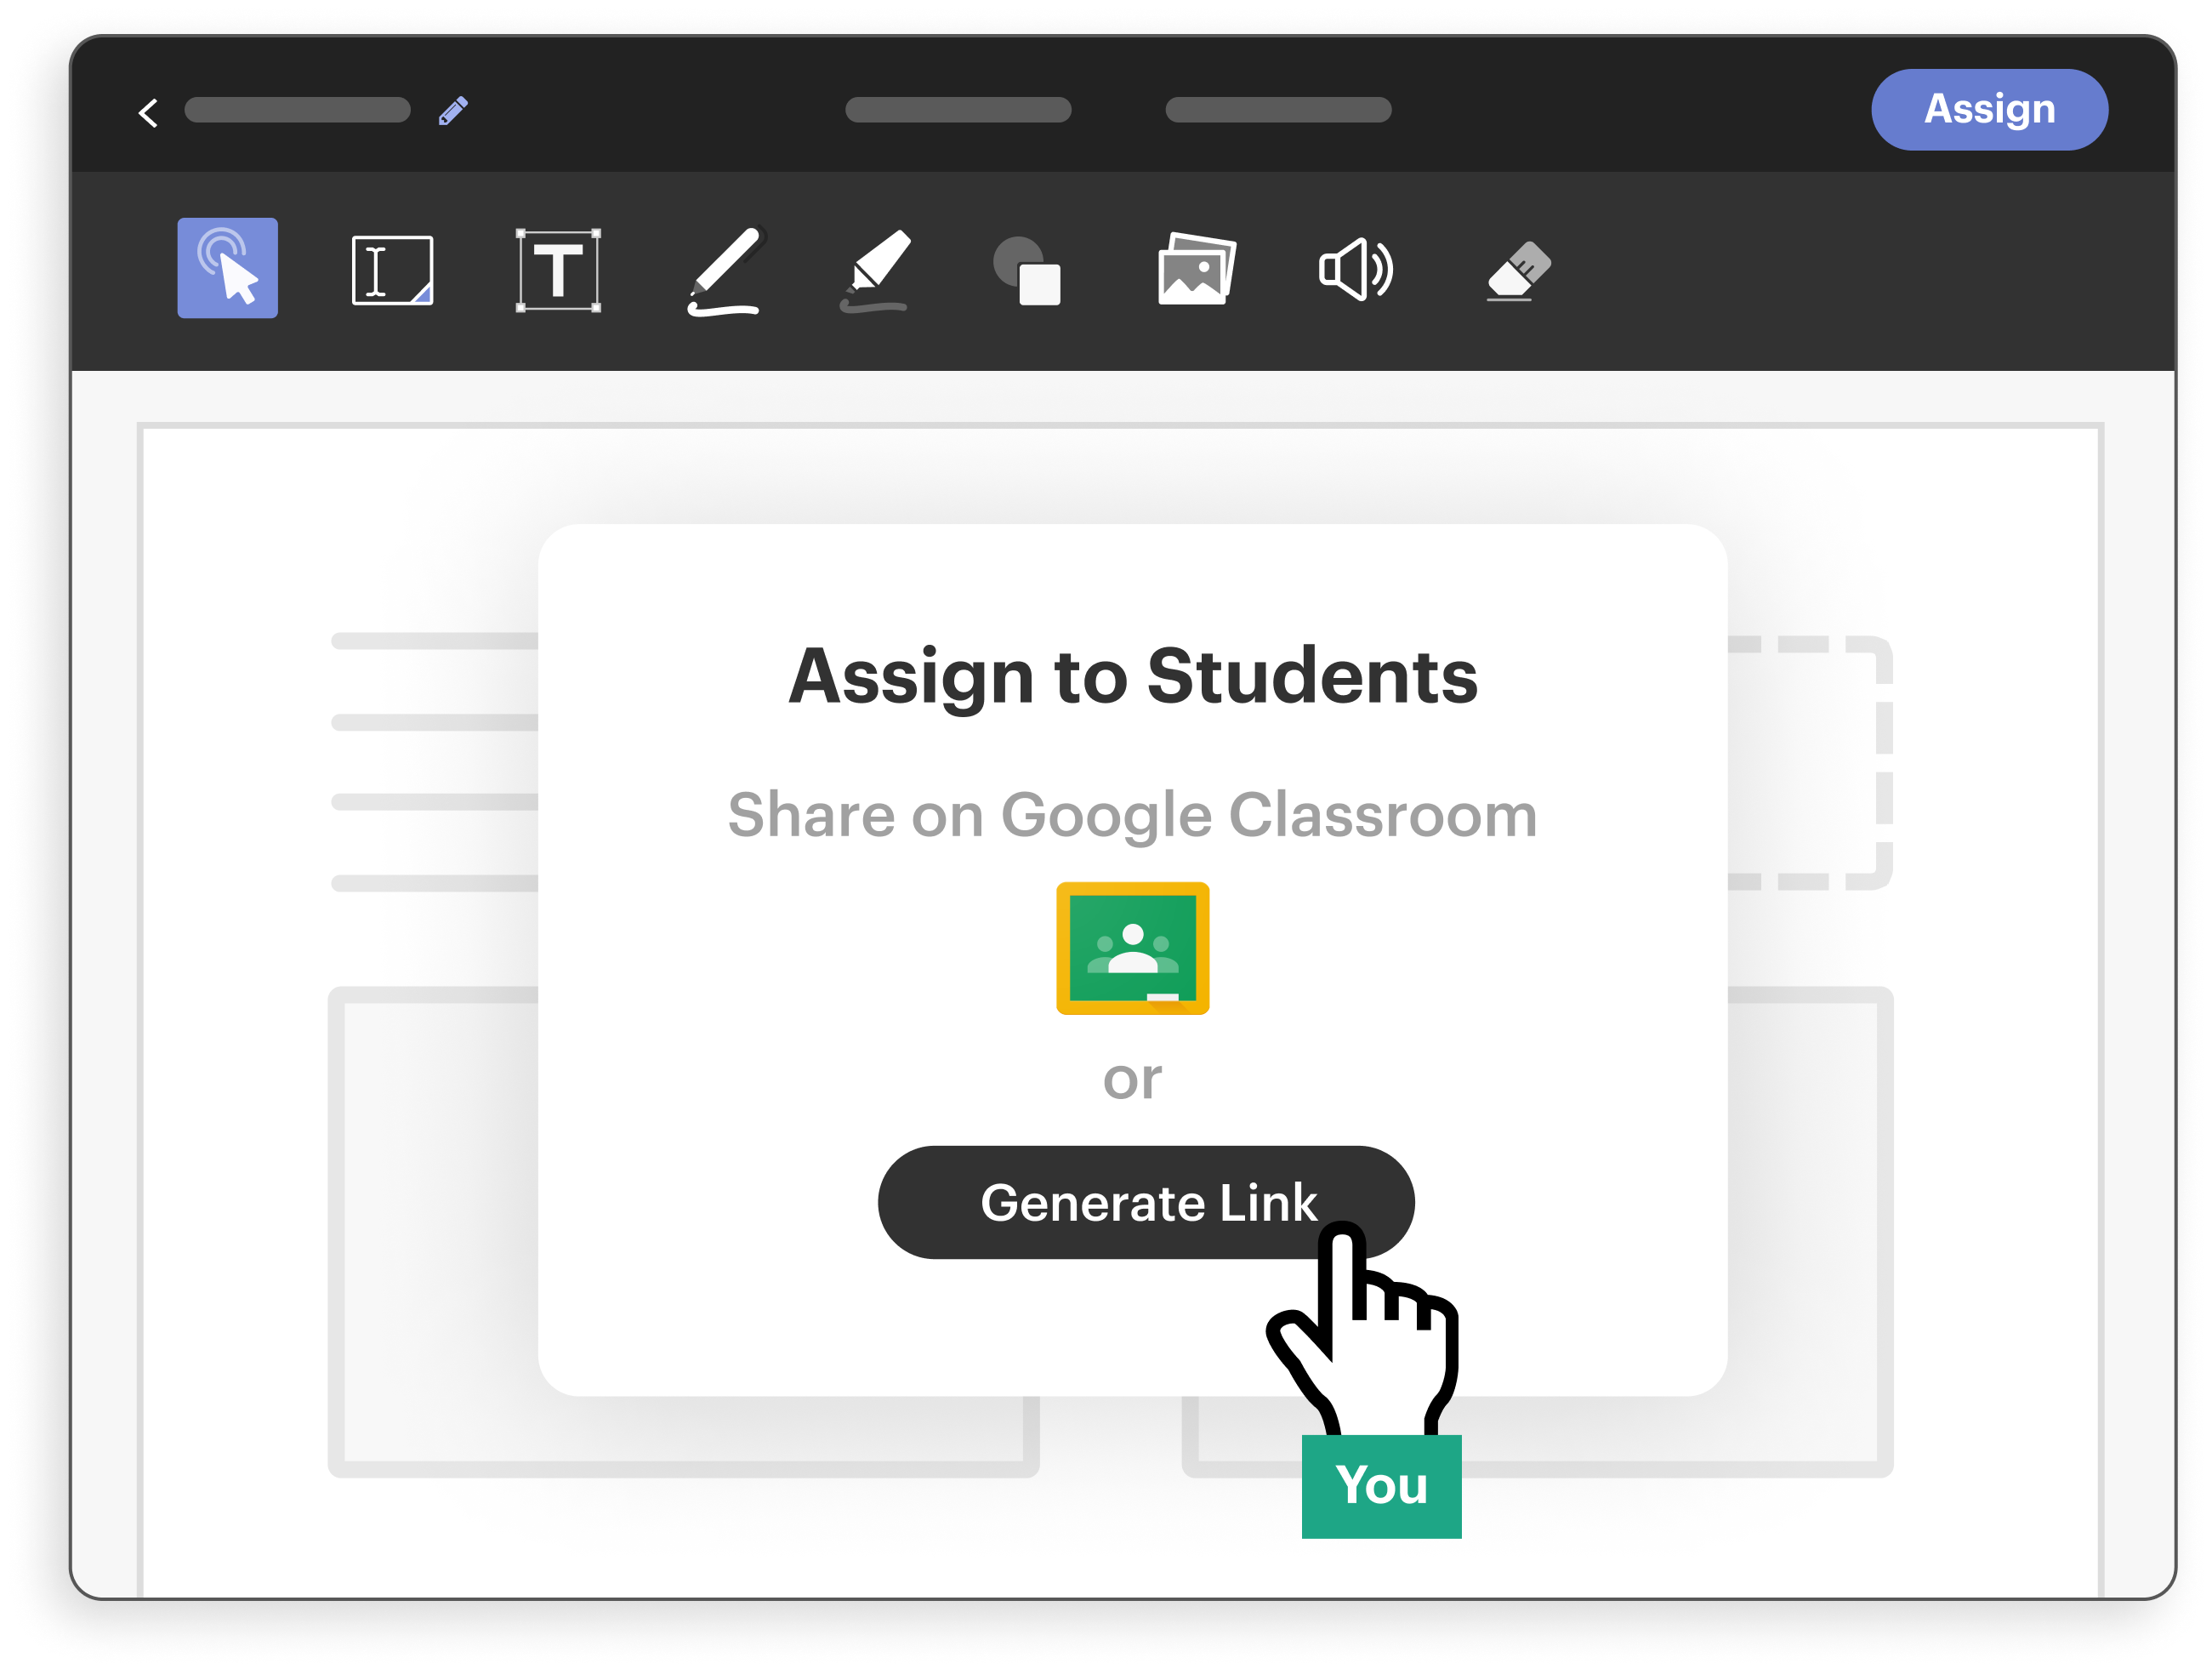 Assigning an activity with Google Classroom